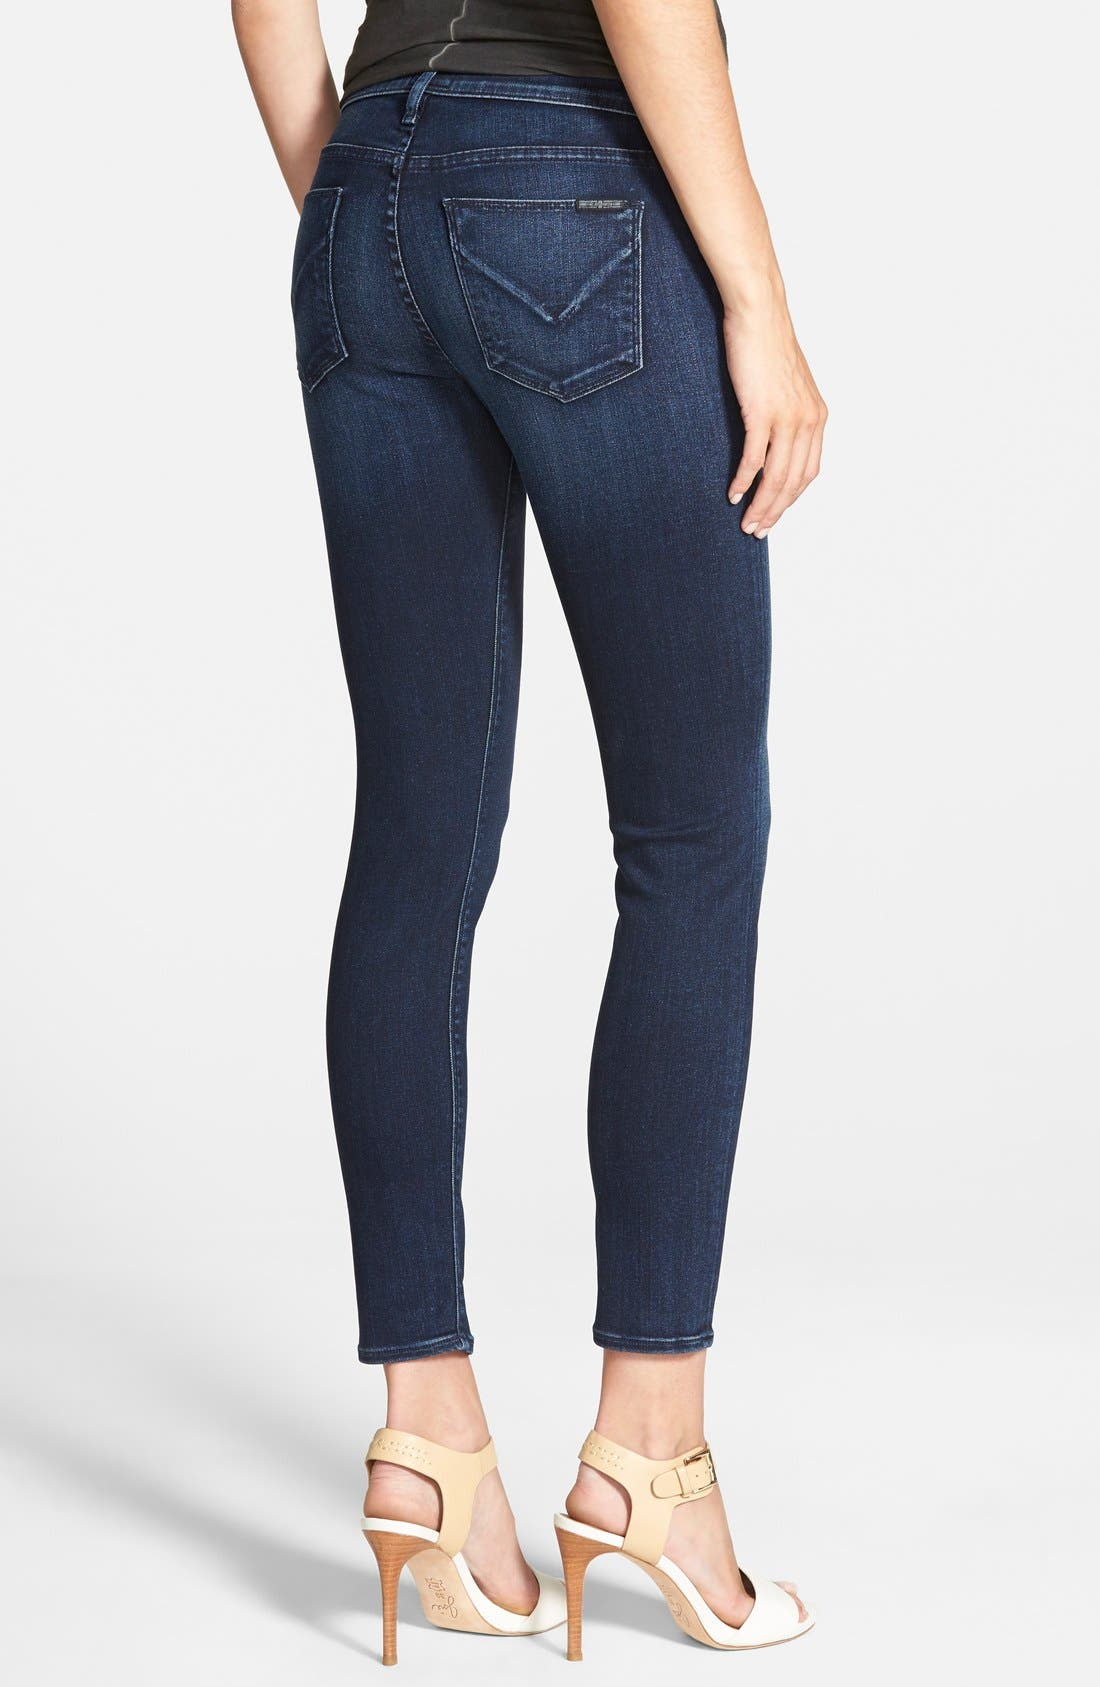 'Nico' Ankle Skinny Jeans,                             Alternate thumbnail 19, color,